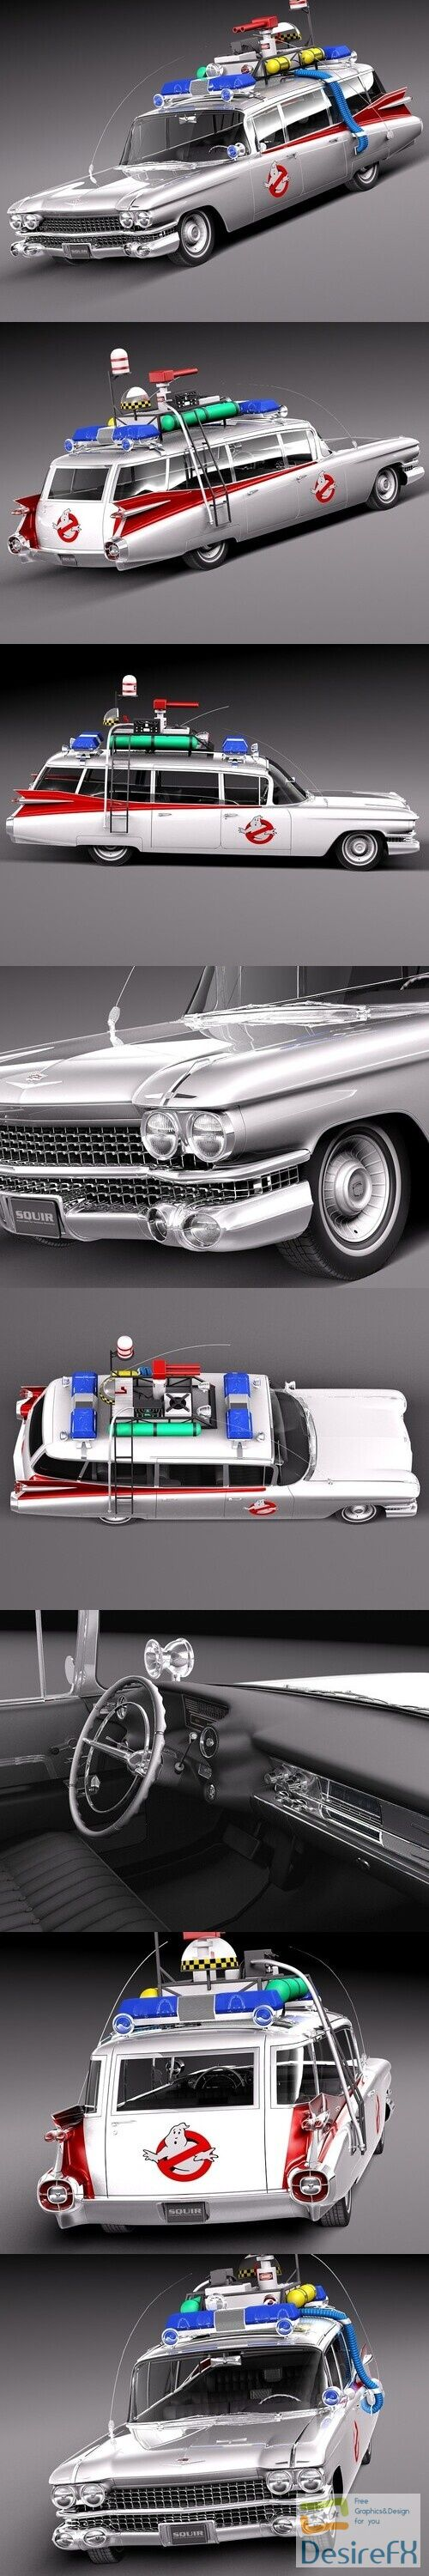 Cadillac ECTO-1 Ghostbusters 1959 3D Model